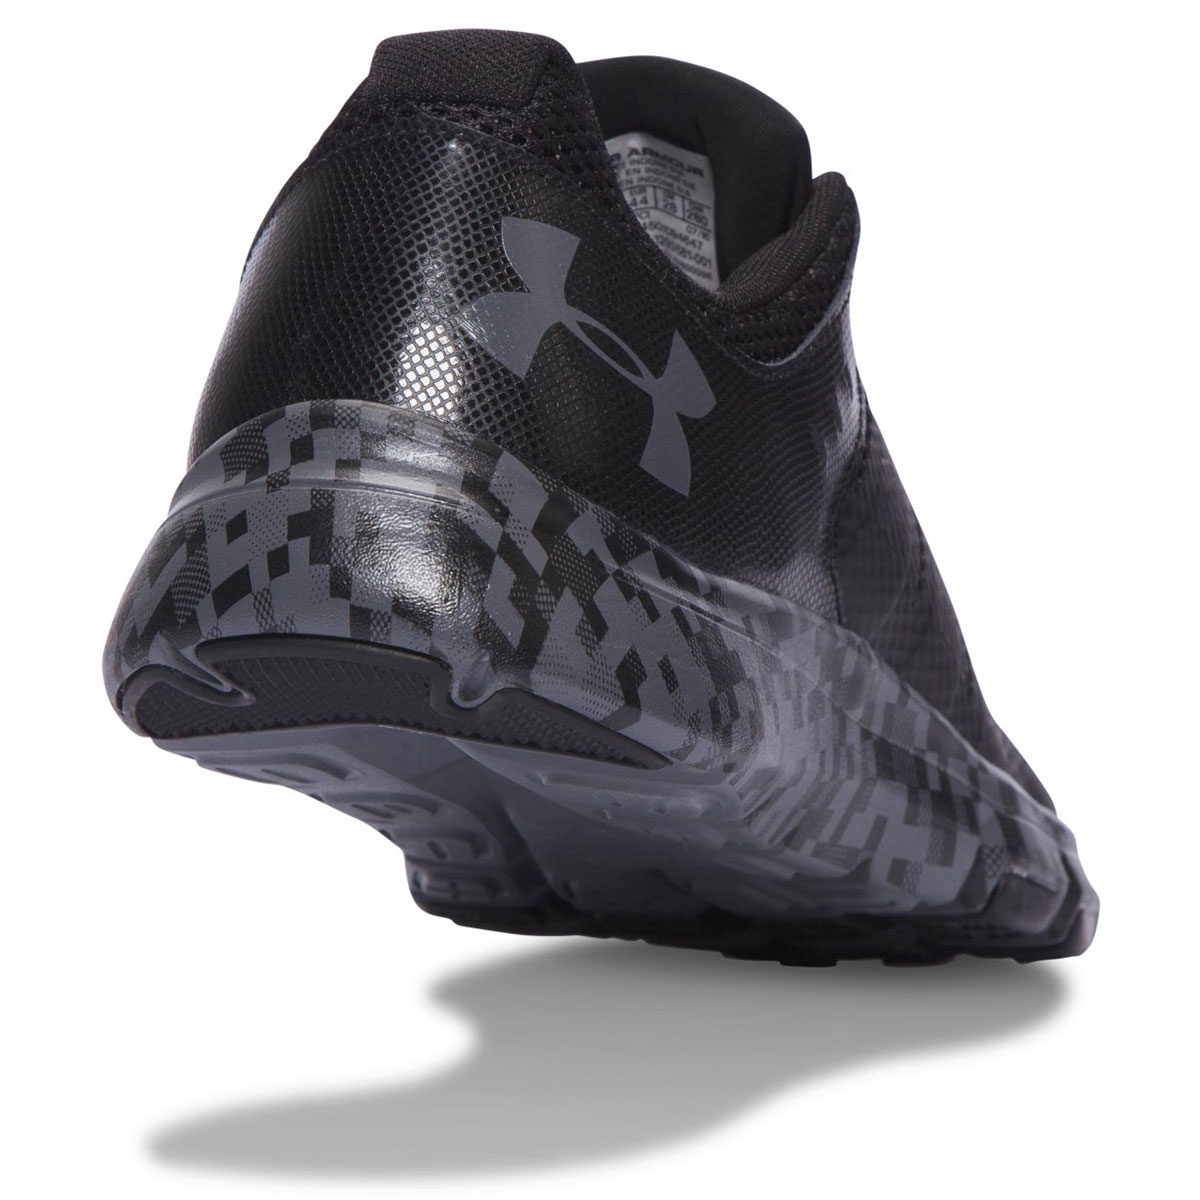 under armour 2017. under-armour-2017-mens-ua-micro-g-limitless- under armour 2017 r